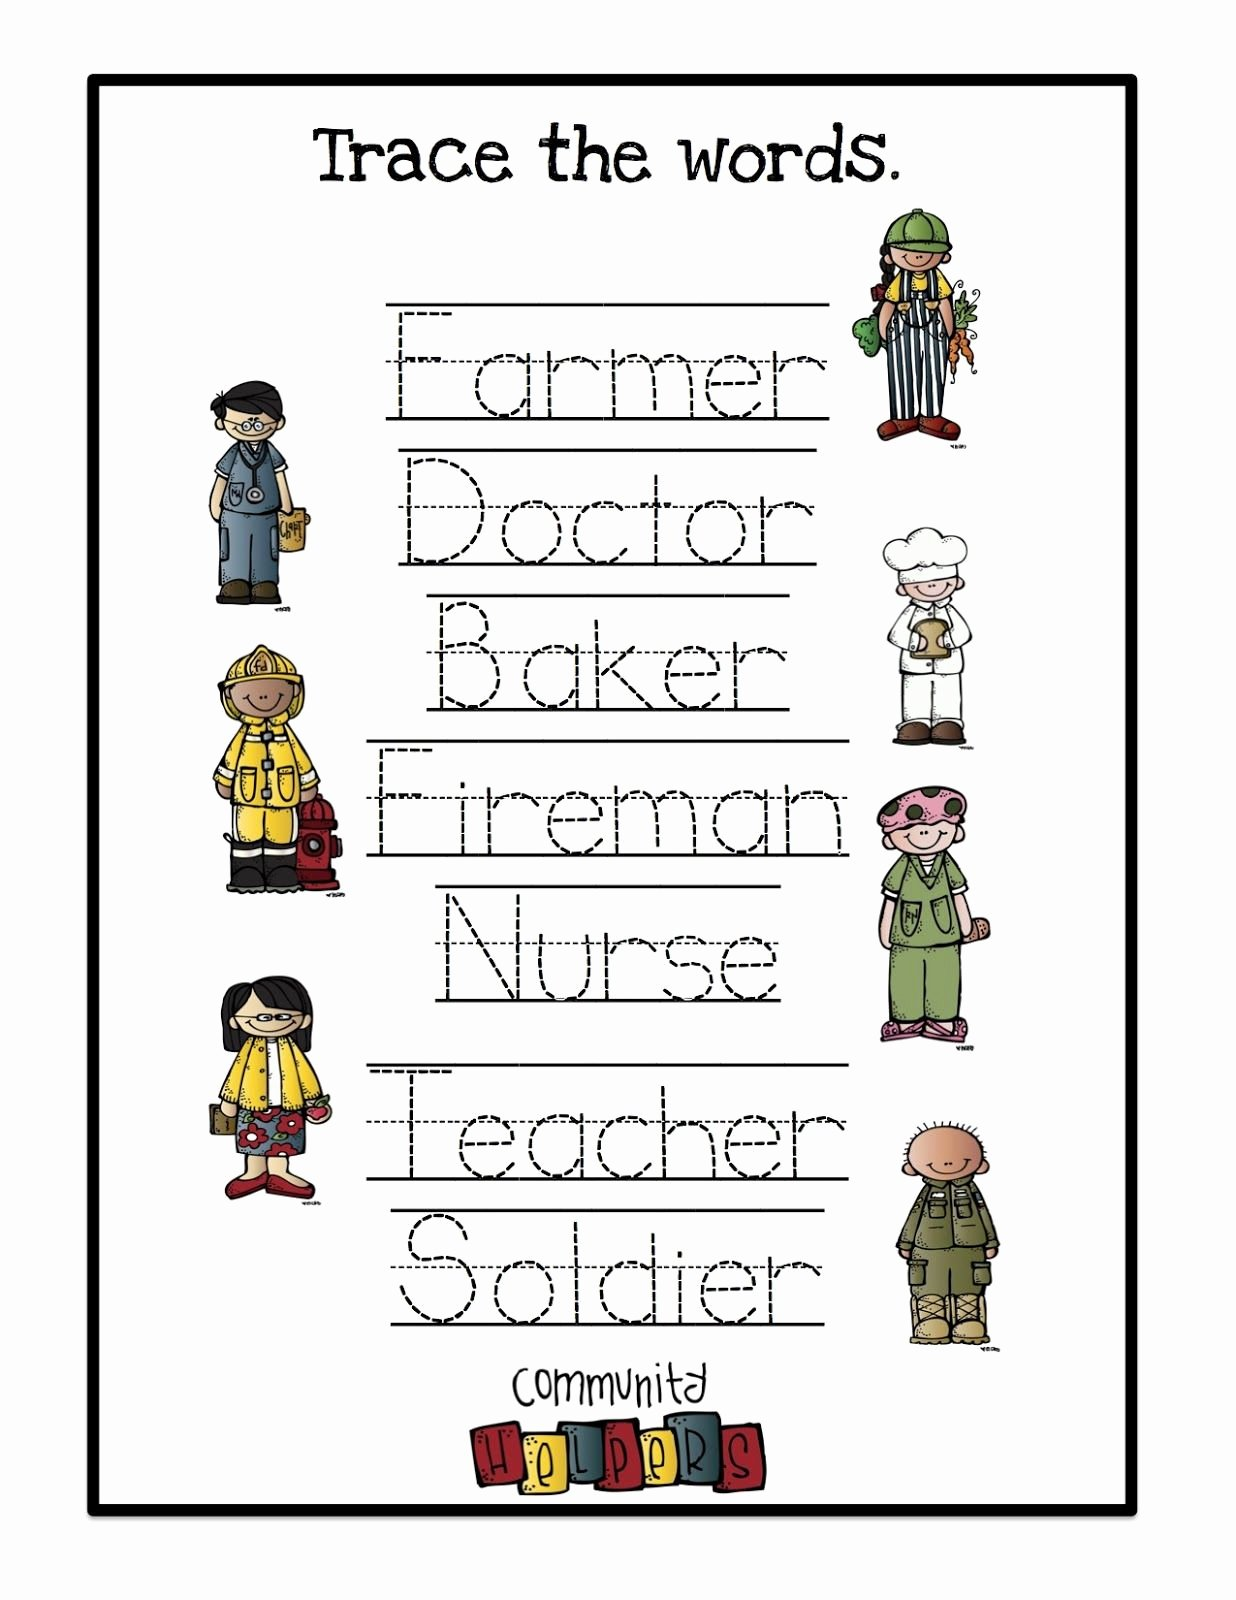 Community Helpers Worksheet for Preschool Inspirational Munity Helpersoring Pages Preschool for toddlers